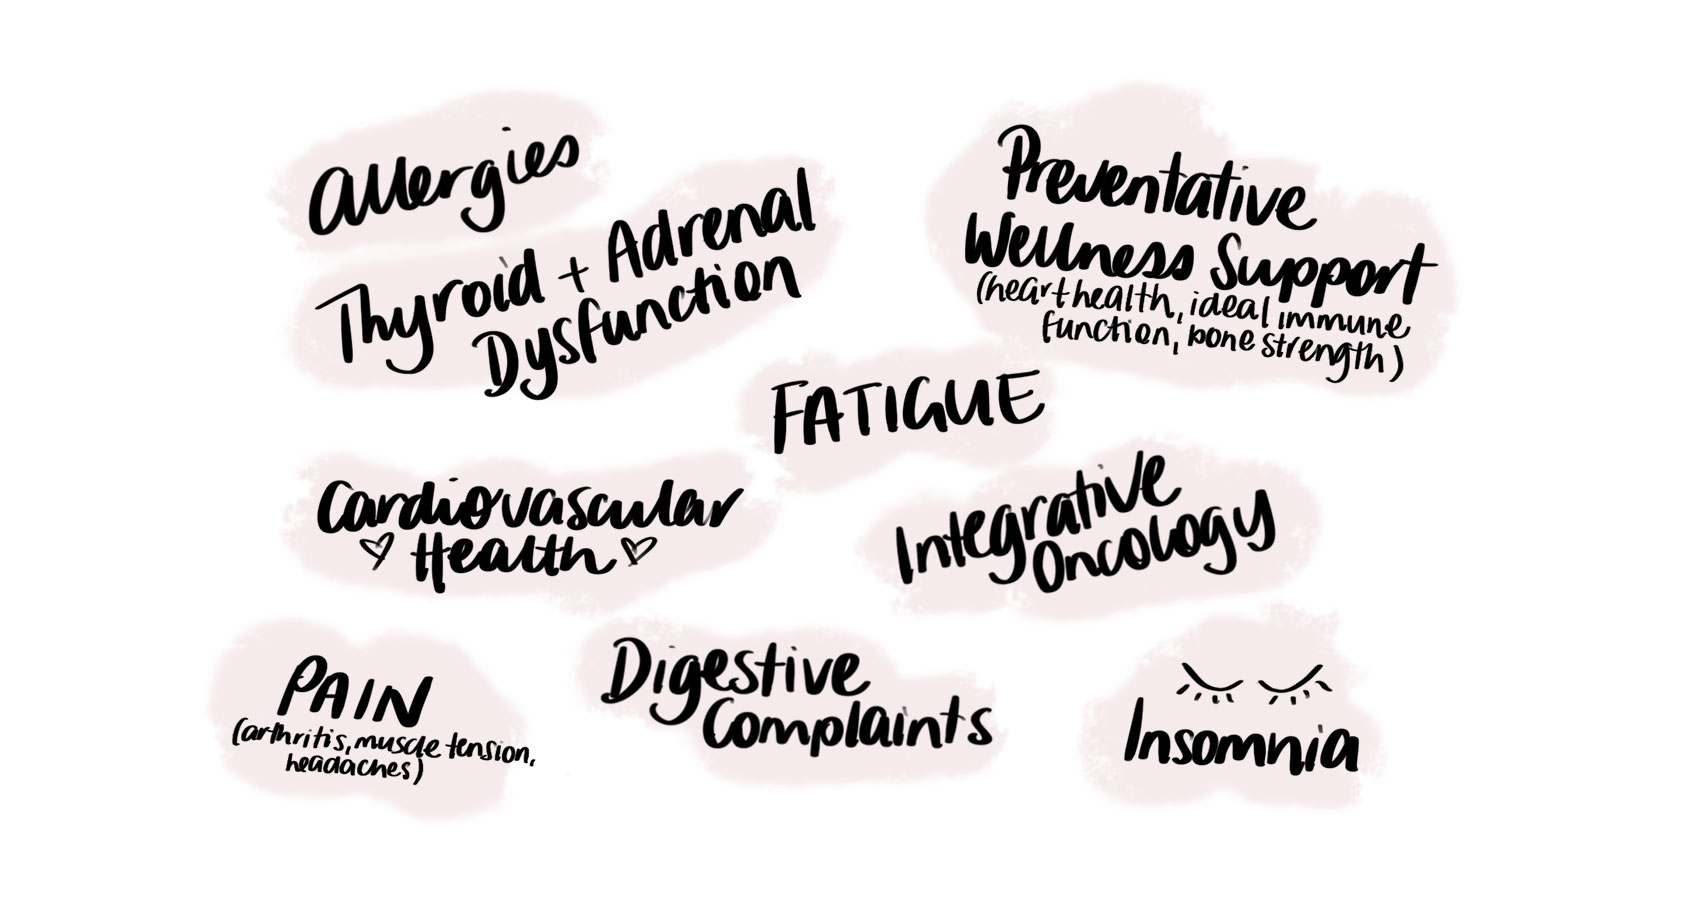 Conditions I treat with Naturopathic Medicine